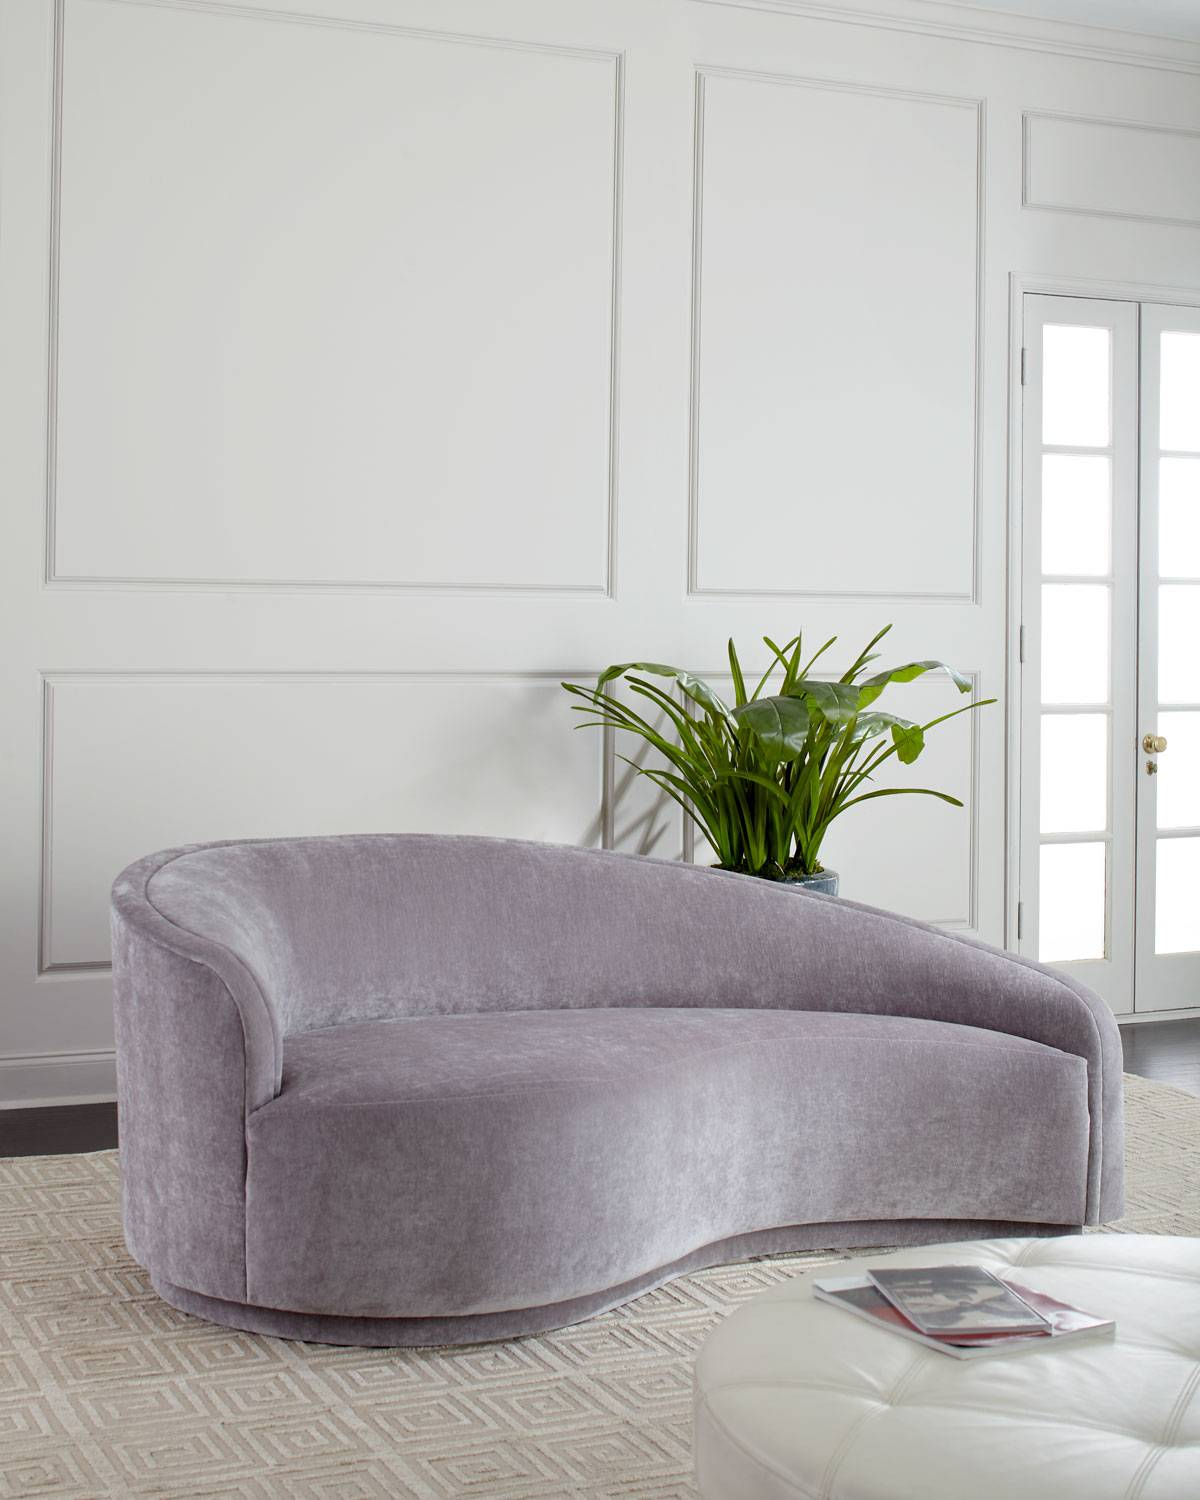 Interlude Home Dana Left Curved Chaise